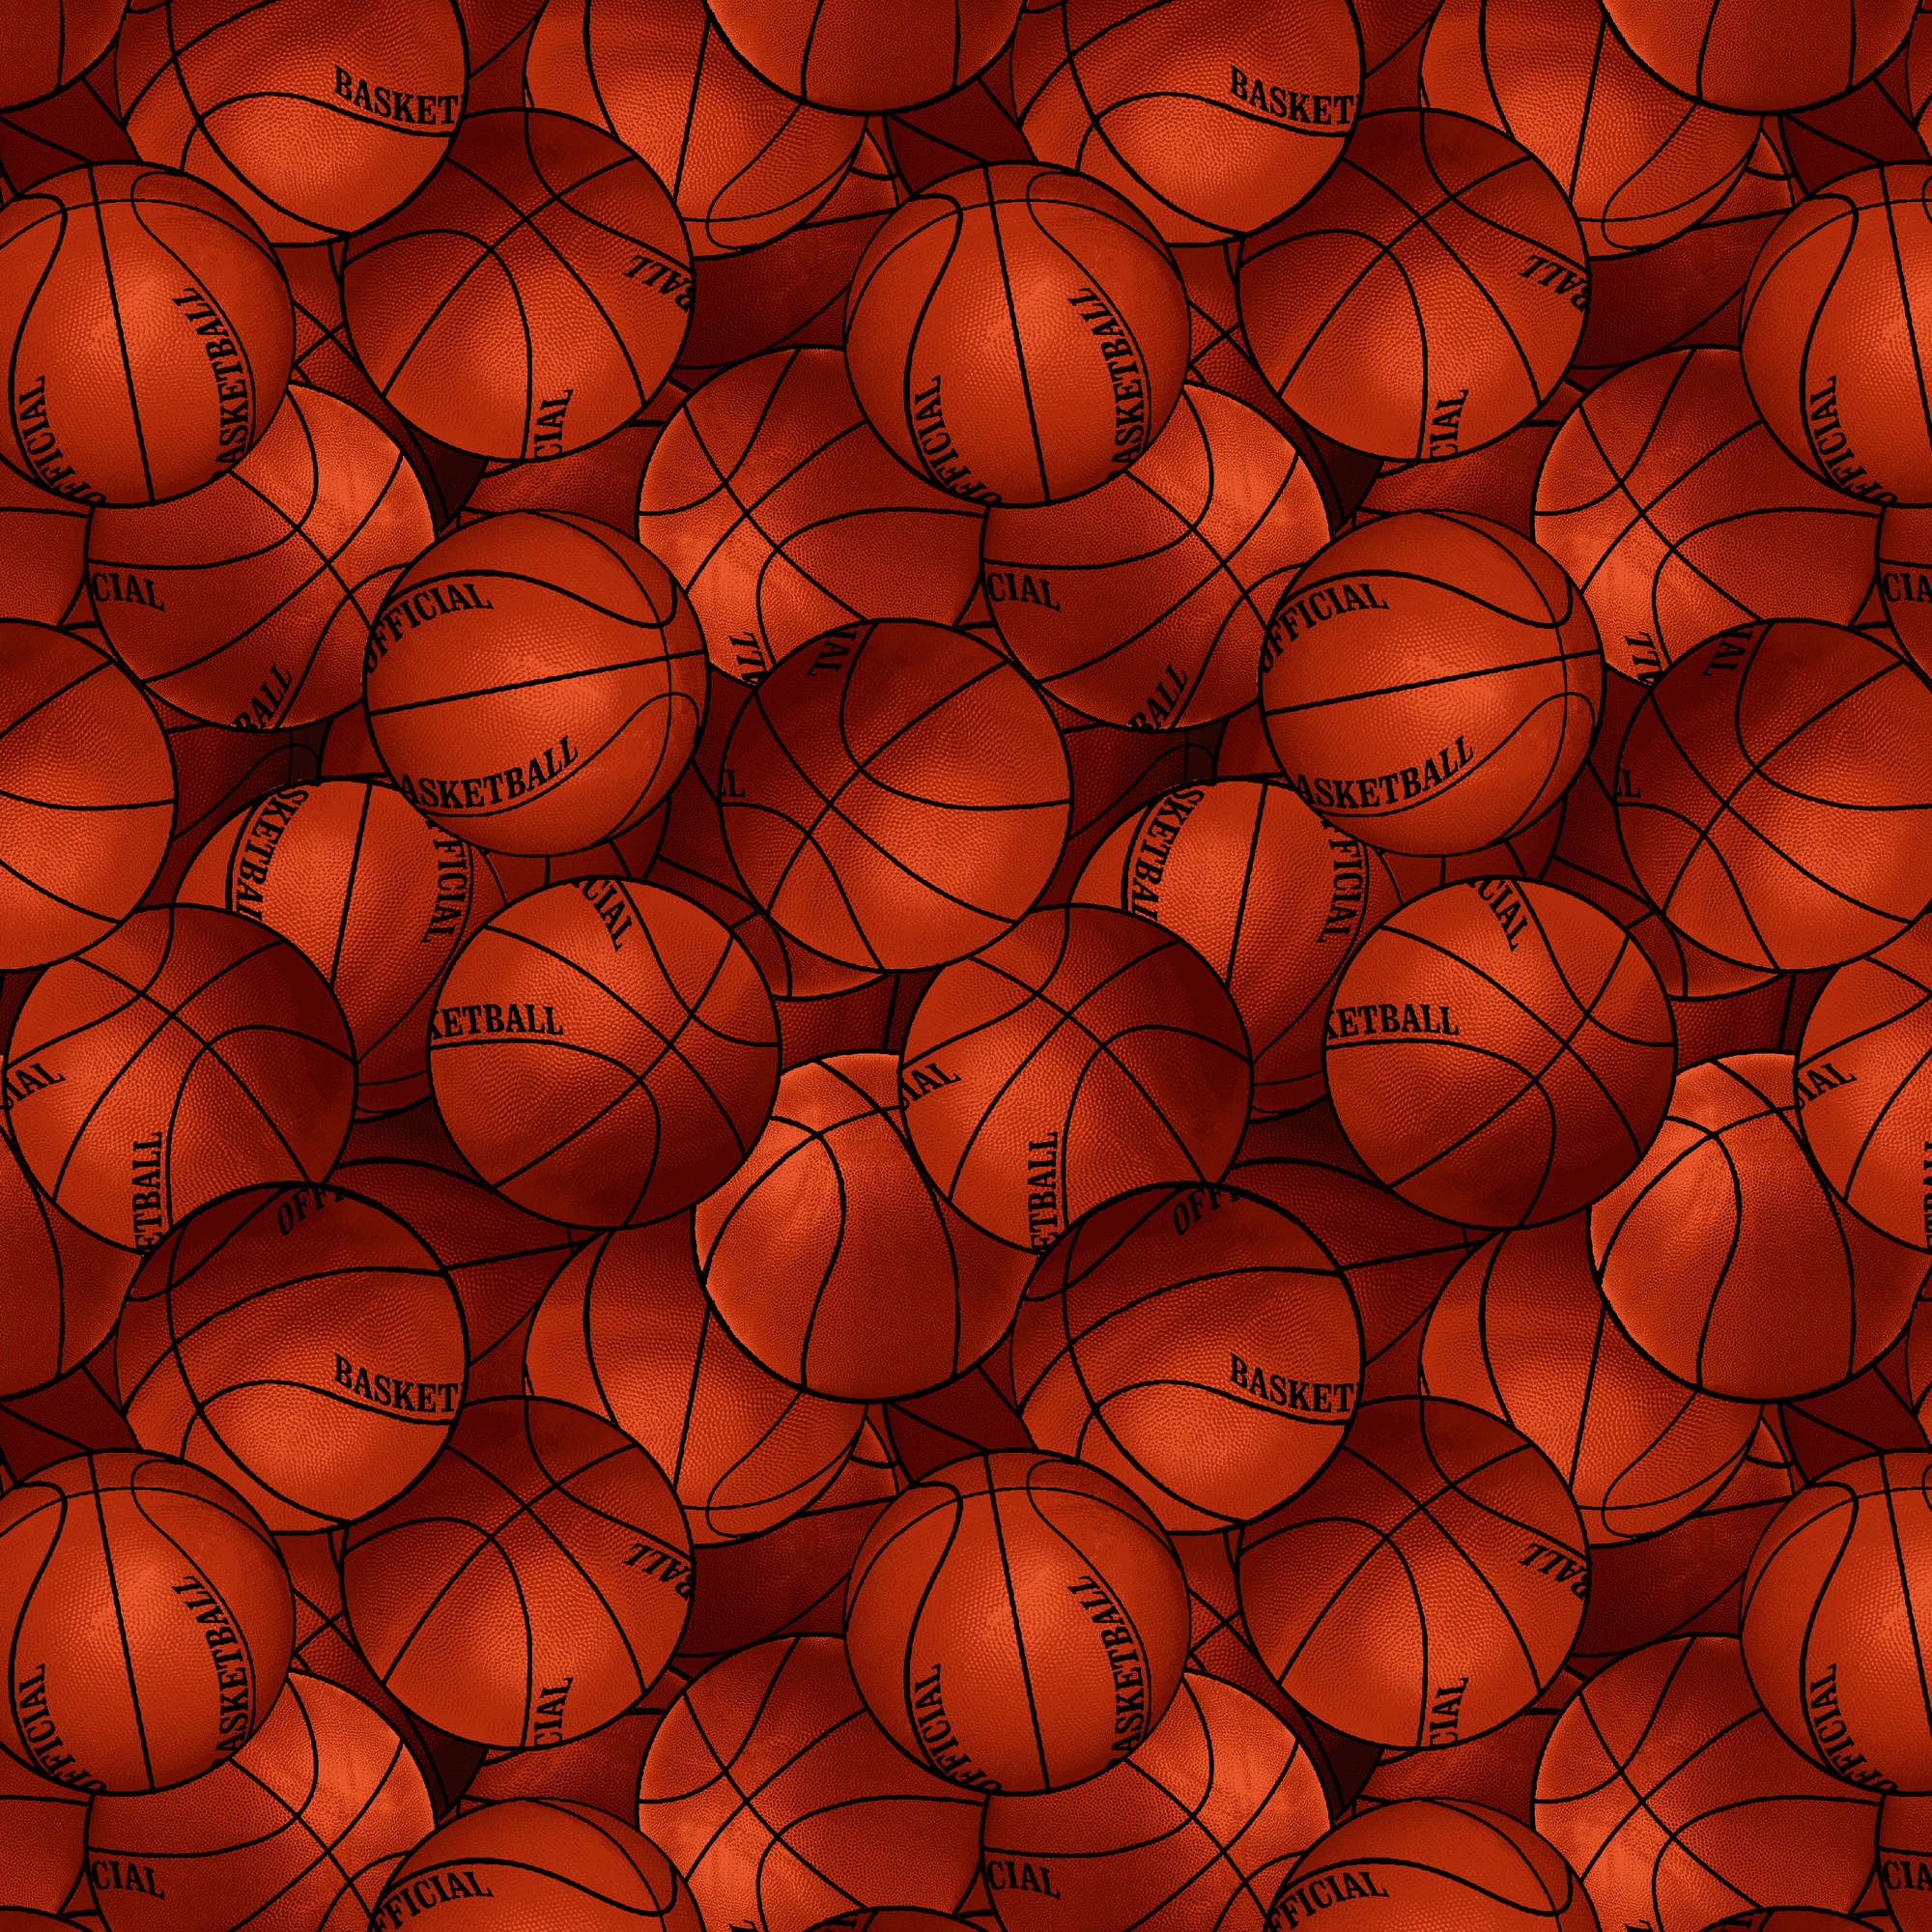 Basket Balls Quilting Cotton Fabric By The Yard, 44""